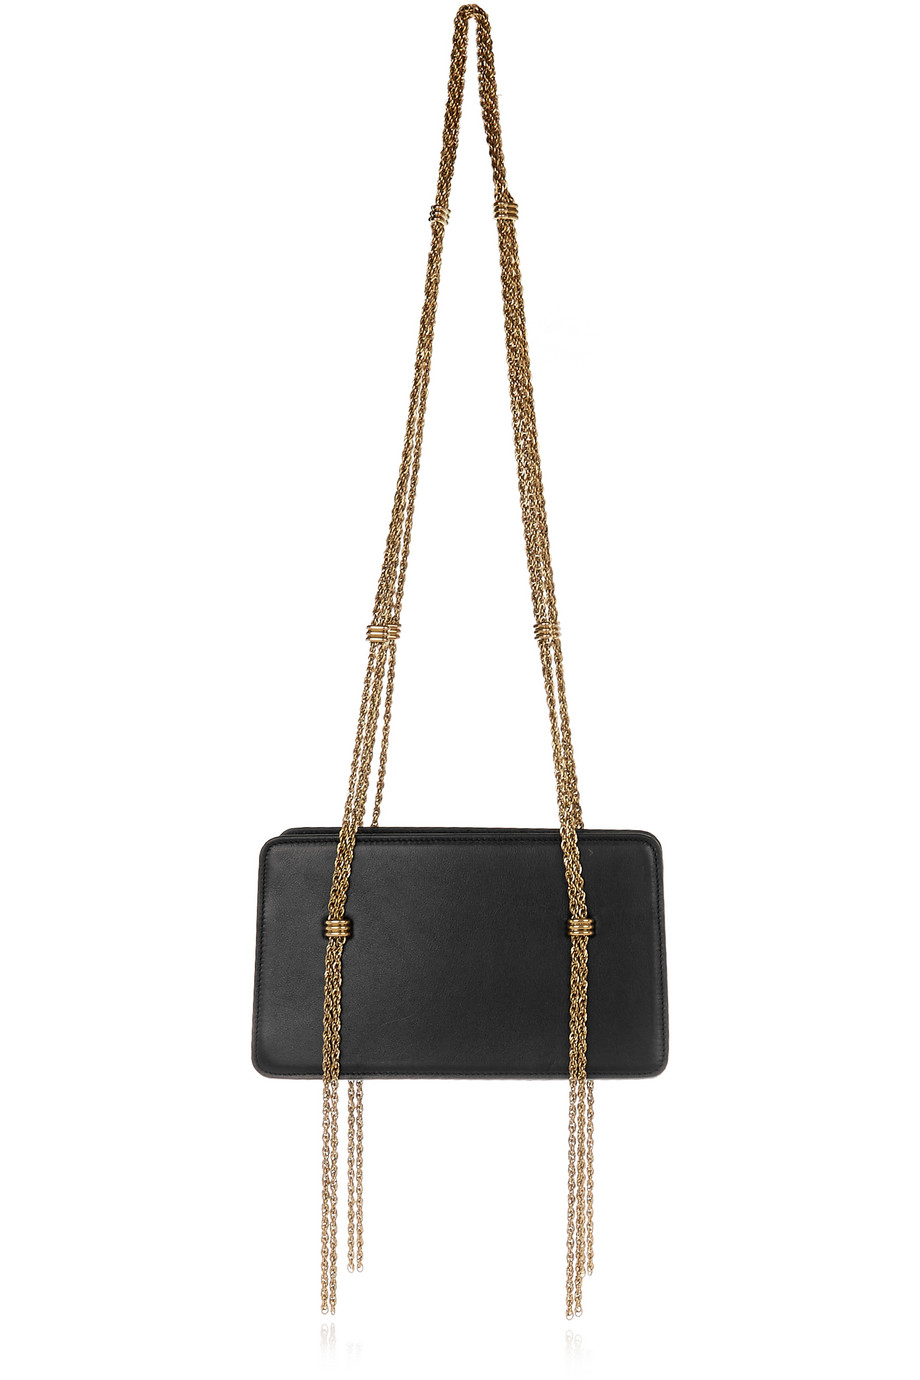 Lanvin Boxy Leather Shoulder Bag, Black, Women's, Size: One Size